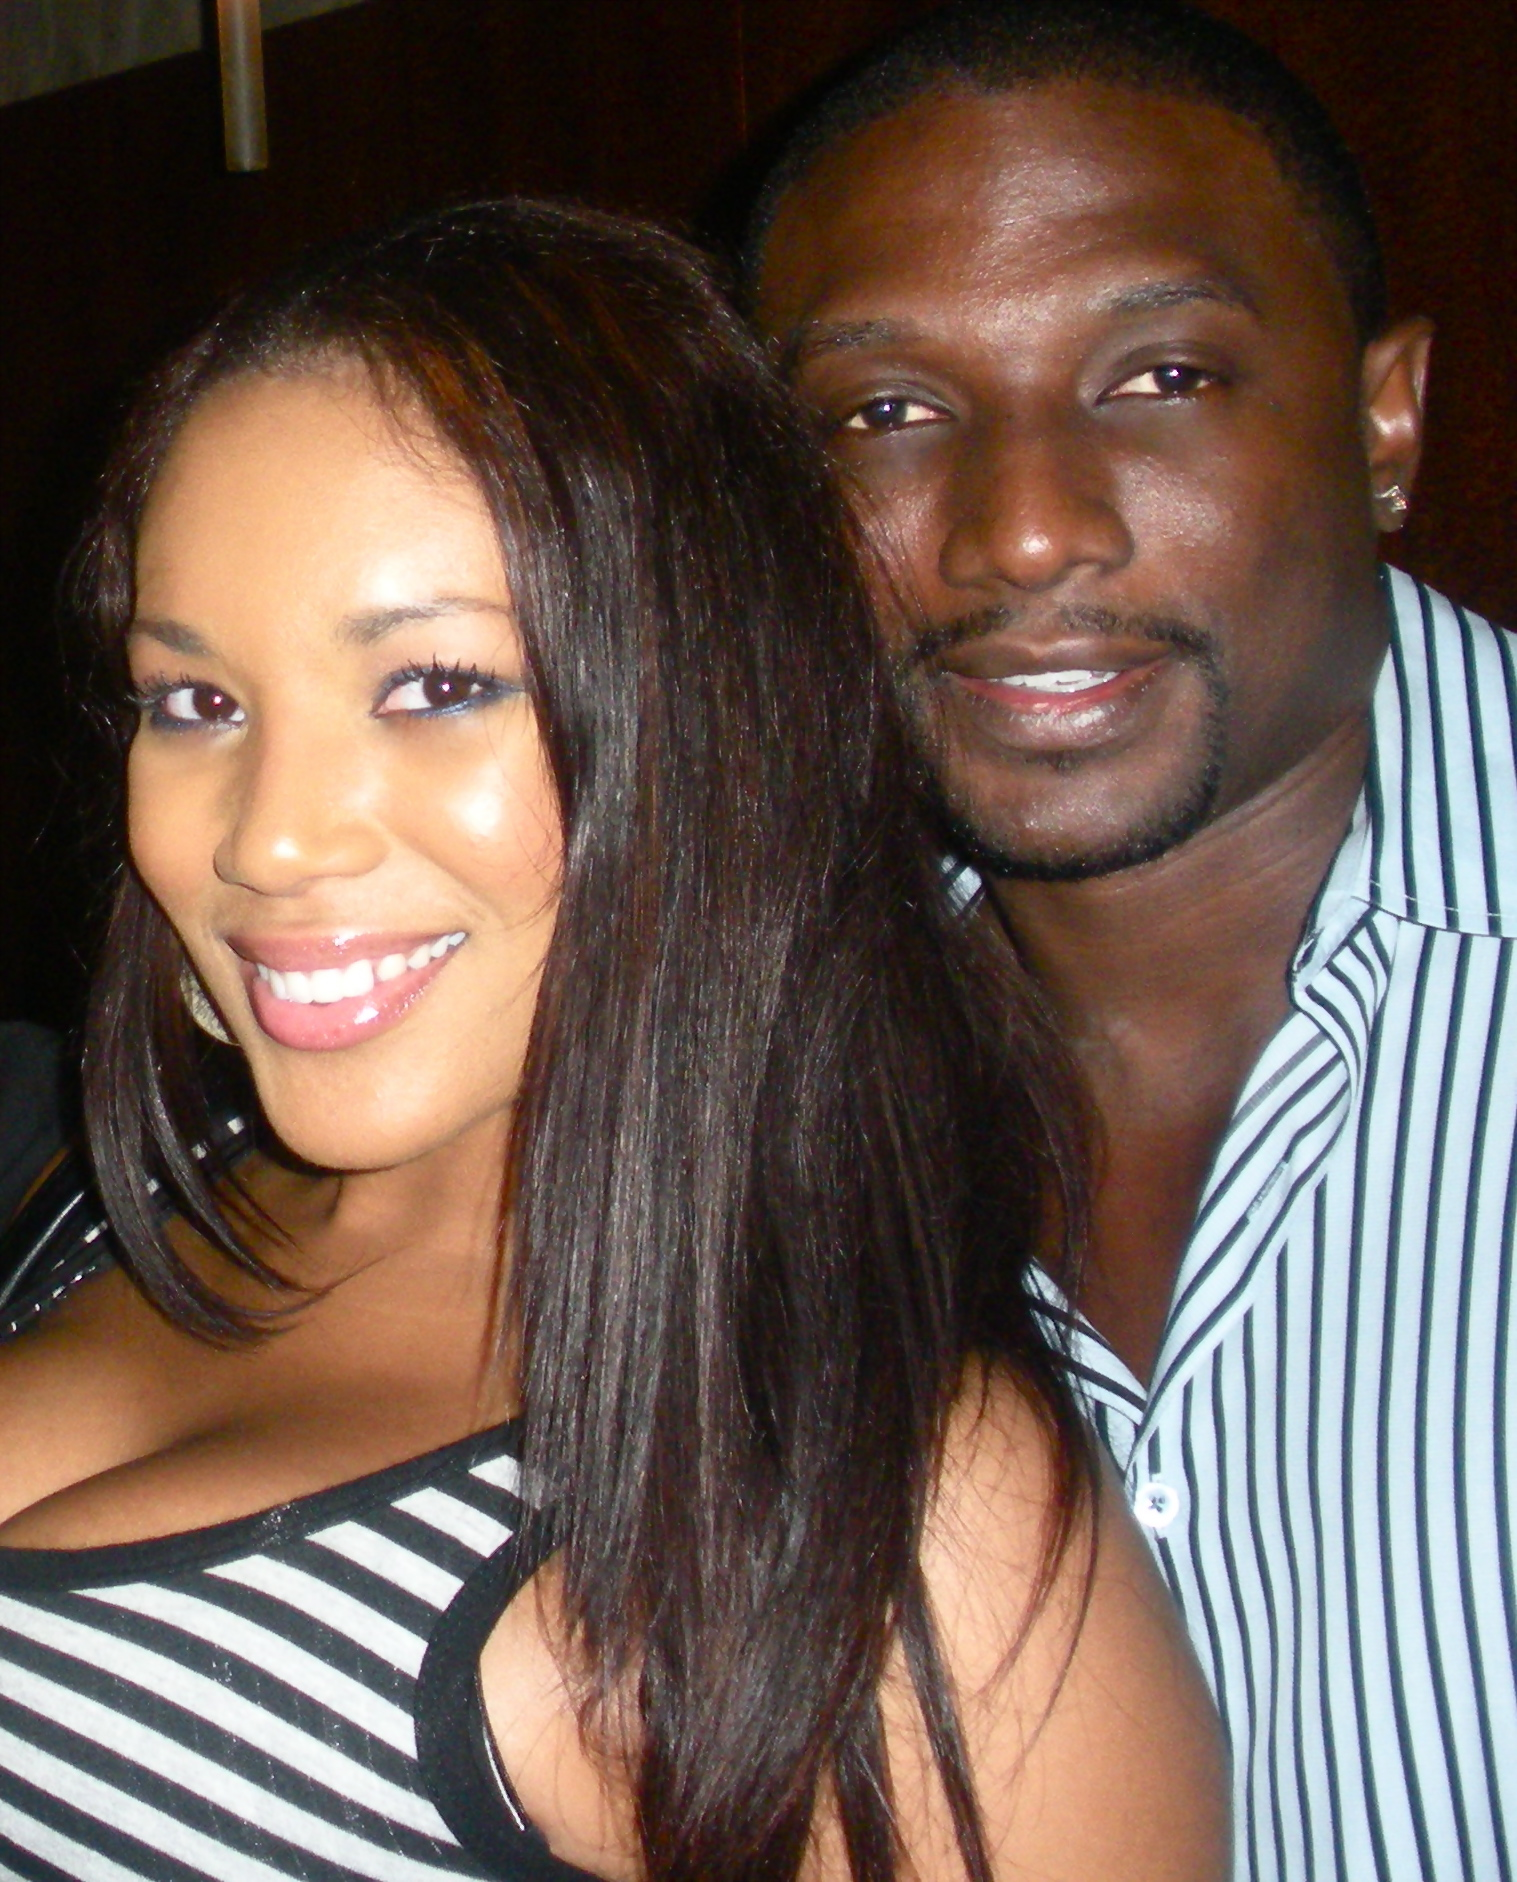 filer black girls personals Bay area black singles provides fun, creative and adventurous group activities for unhitched san francisco bay area singles whose ages range from mid-20s, 30s, to 40s, to enjoy.